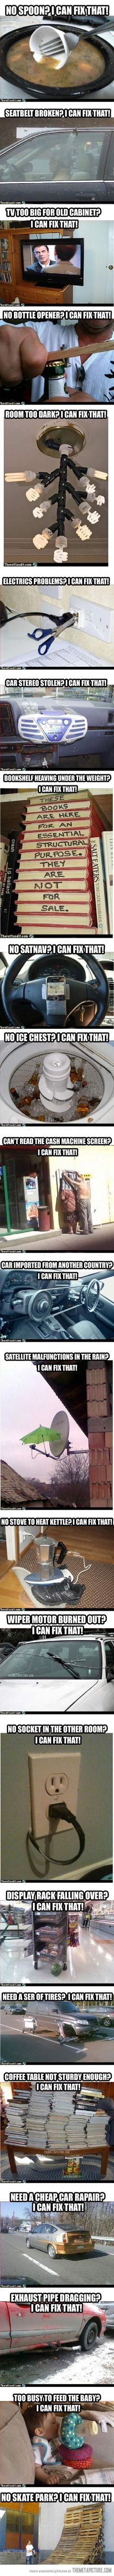 I can fix that…engineered ingenuity!  #engineer